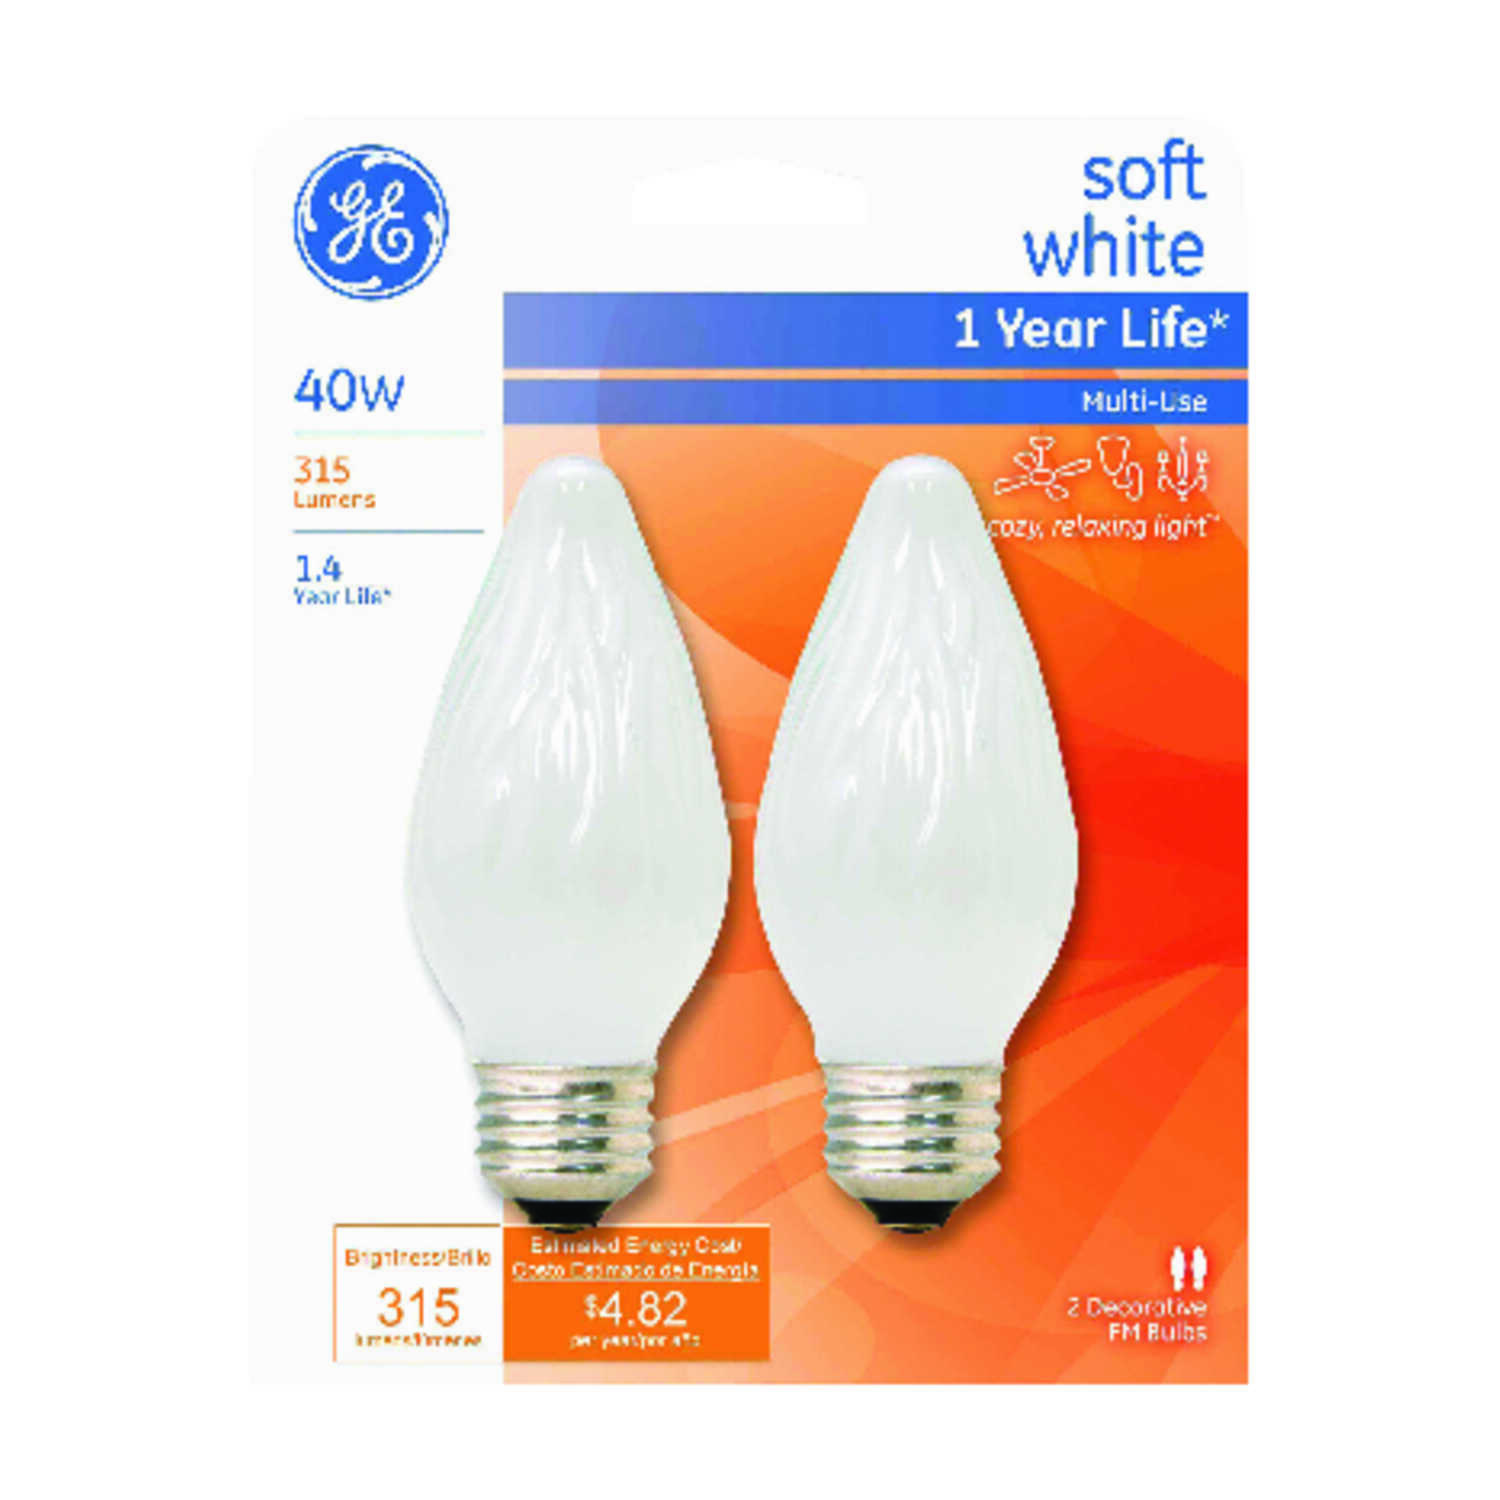 GE  40 watts F15  Incandescent Bulb  315 lumens Soft White  Decorative  2 pk